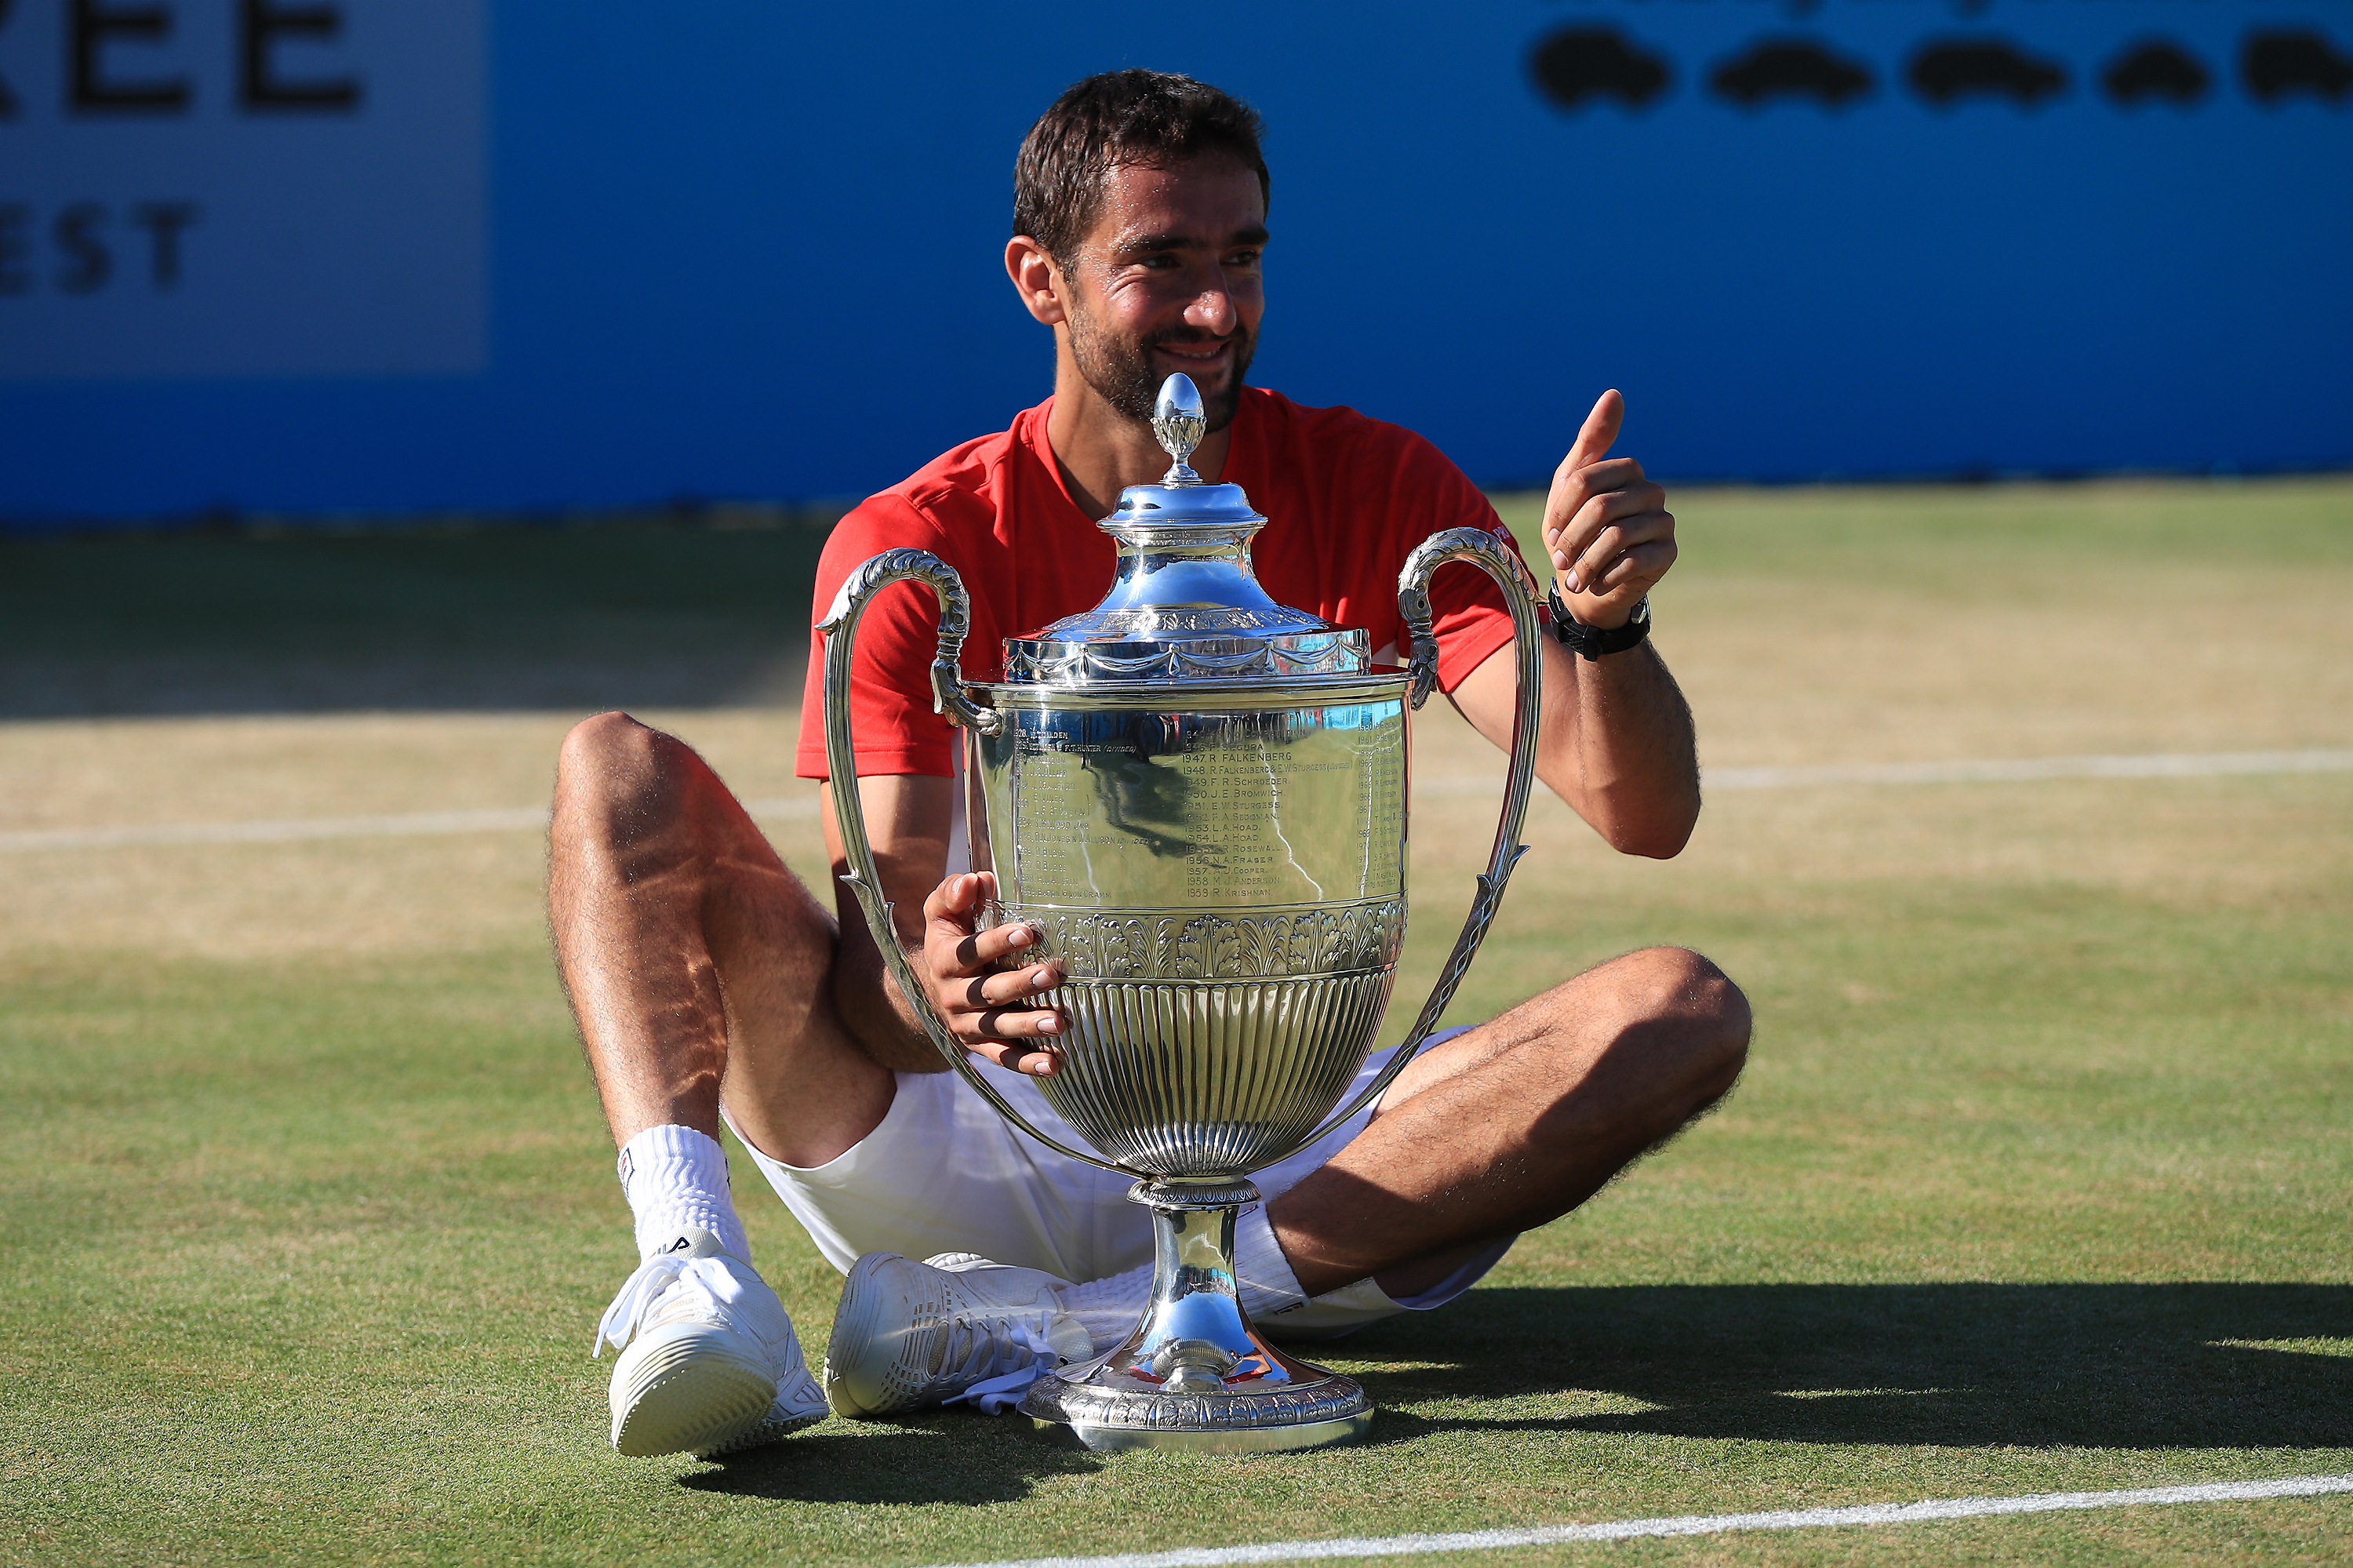 Marin Cilic shows a thumbs up and celebrates winning the Fever-Tree Champsionships